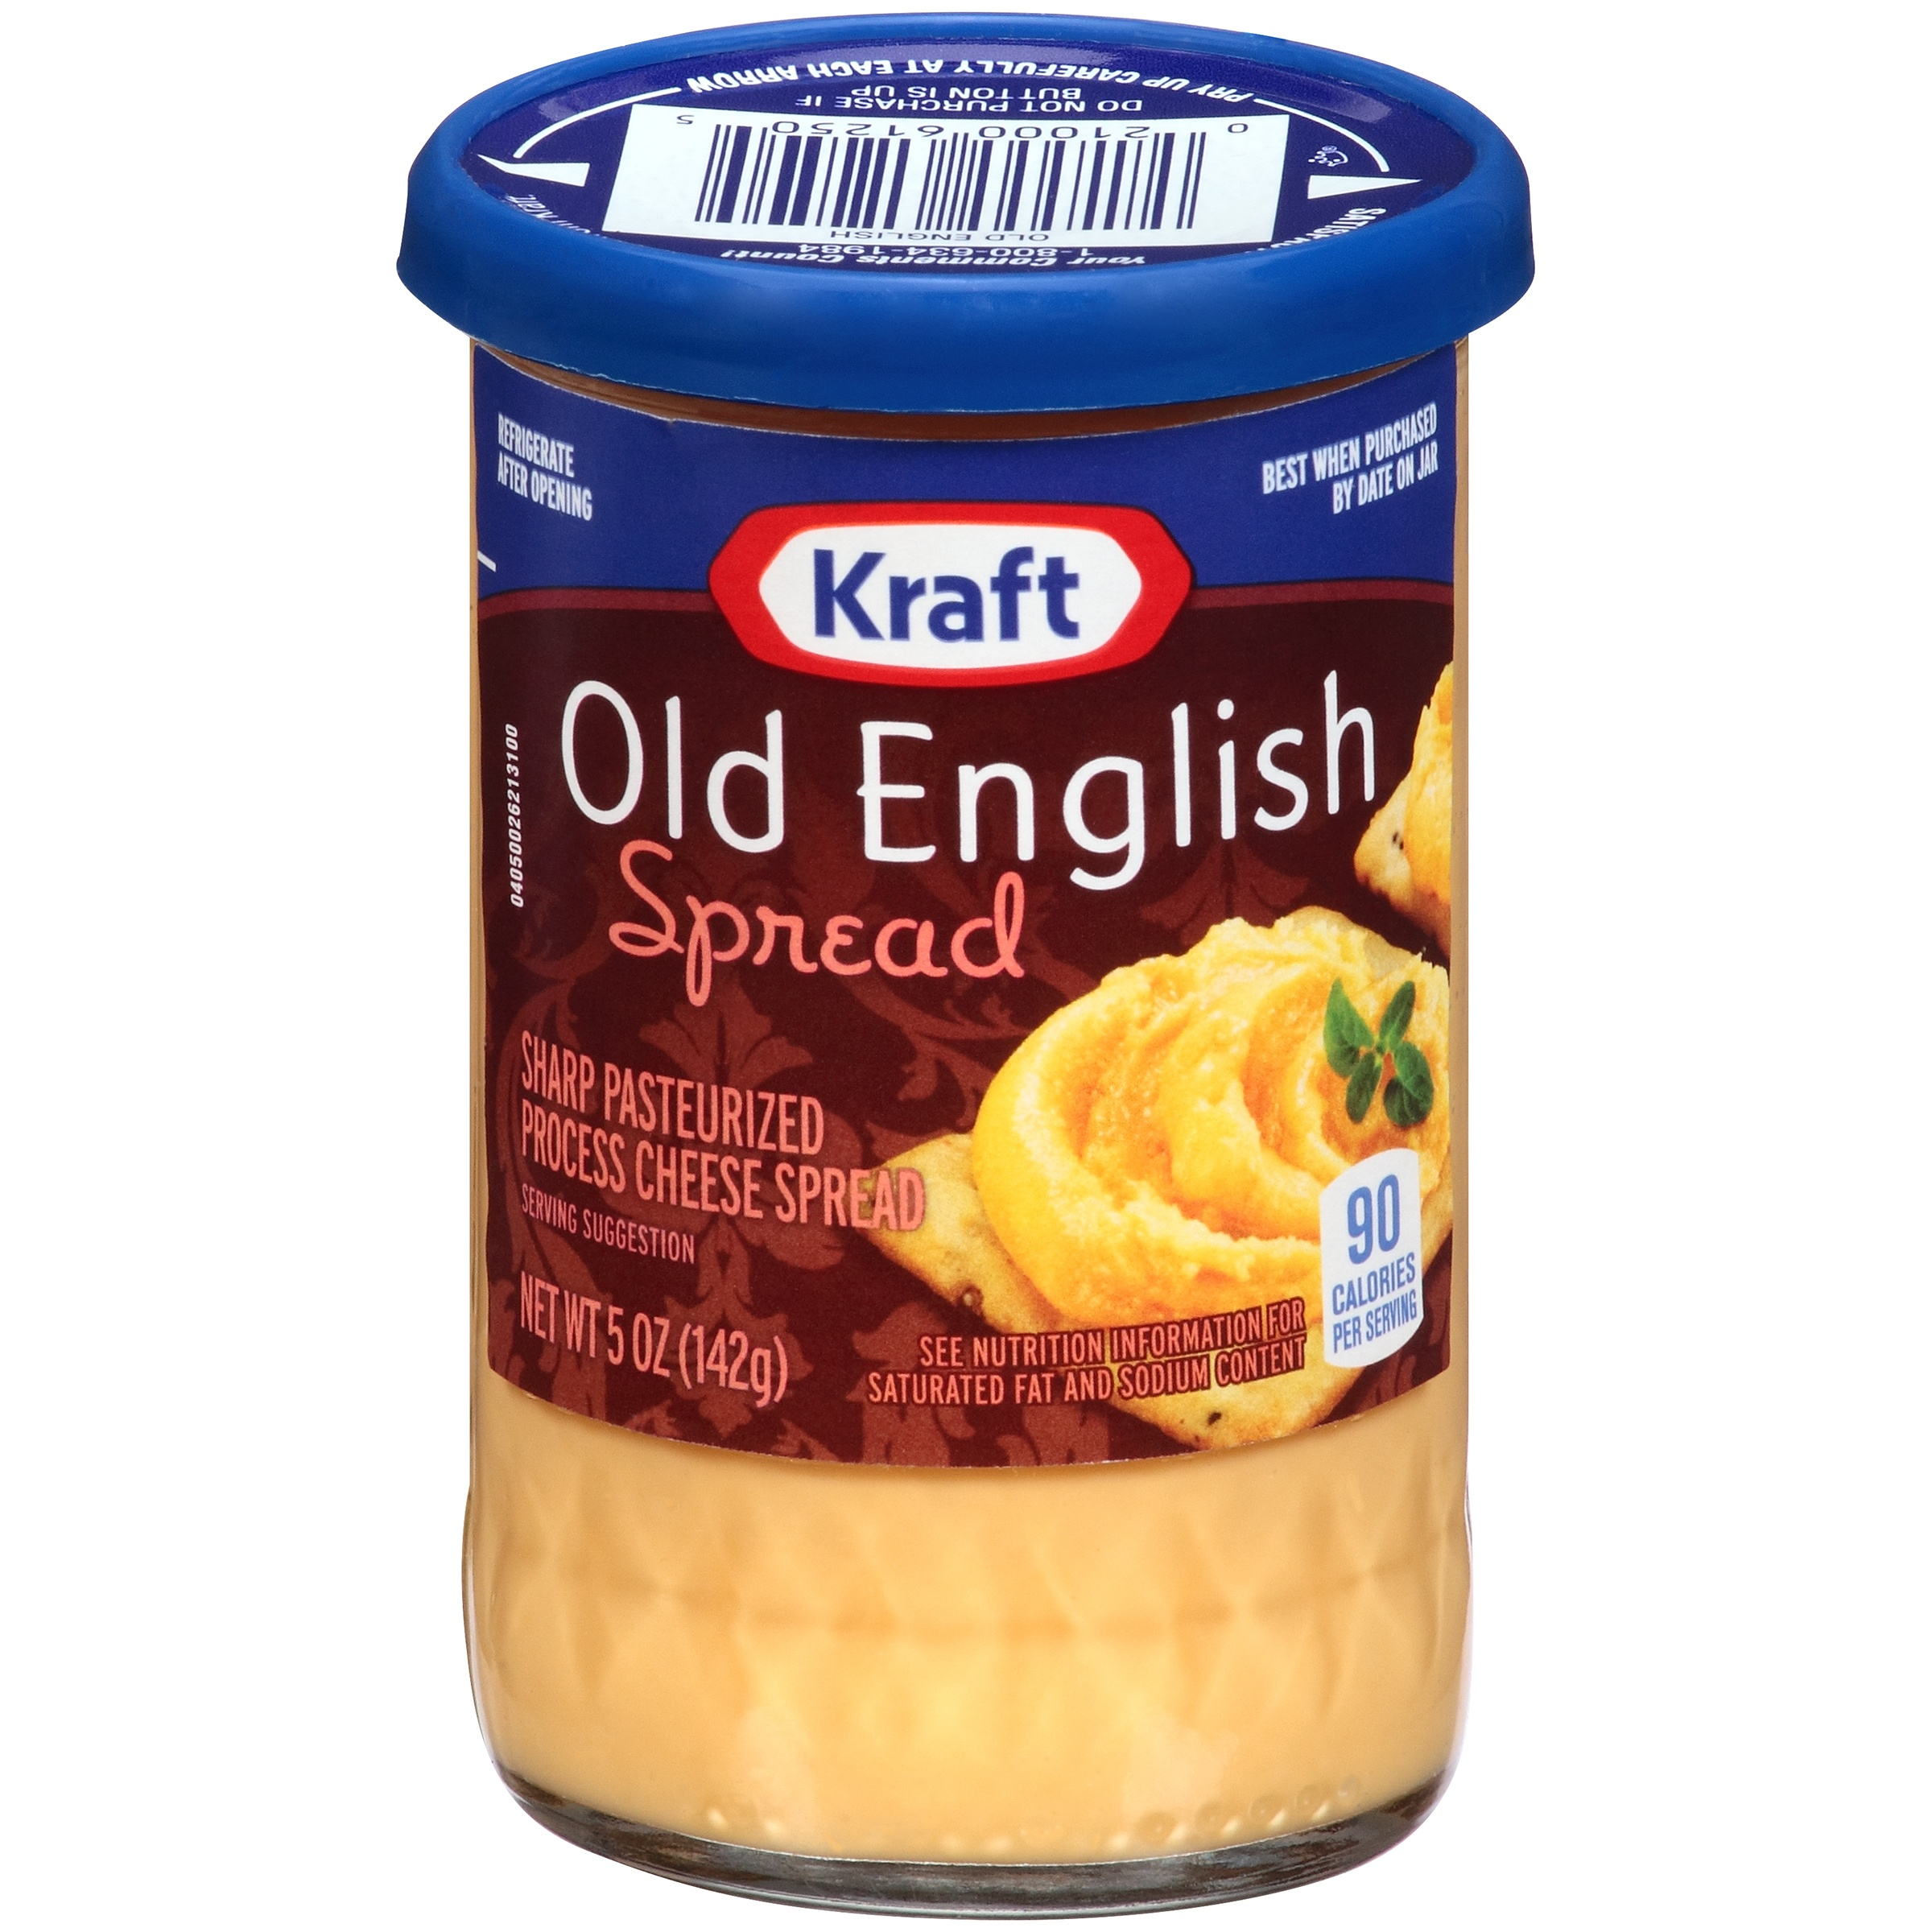 Kraft Old English Spread 5 oz. Jar